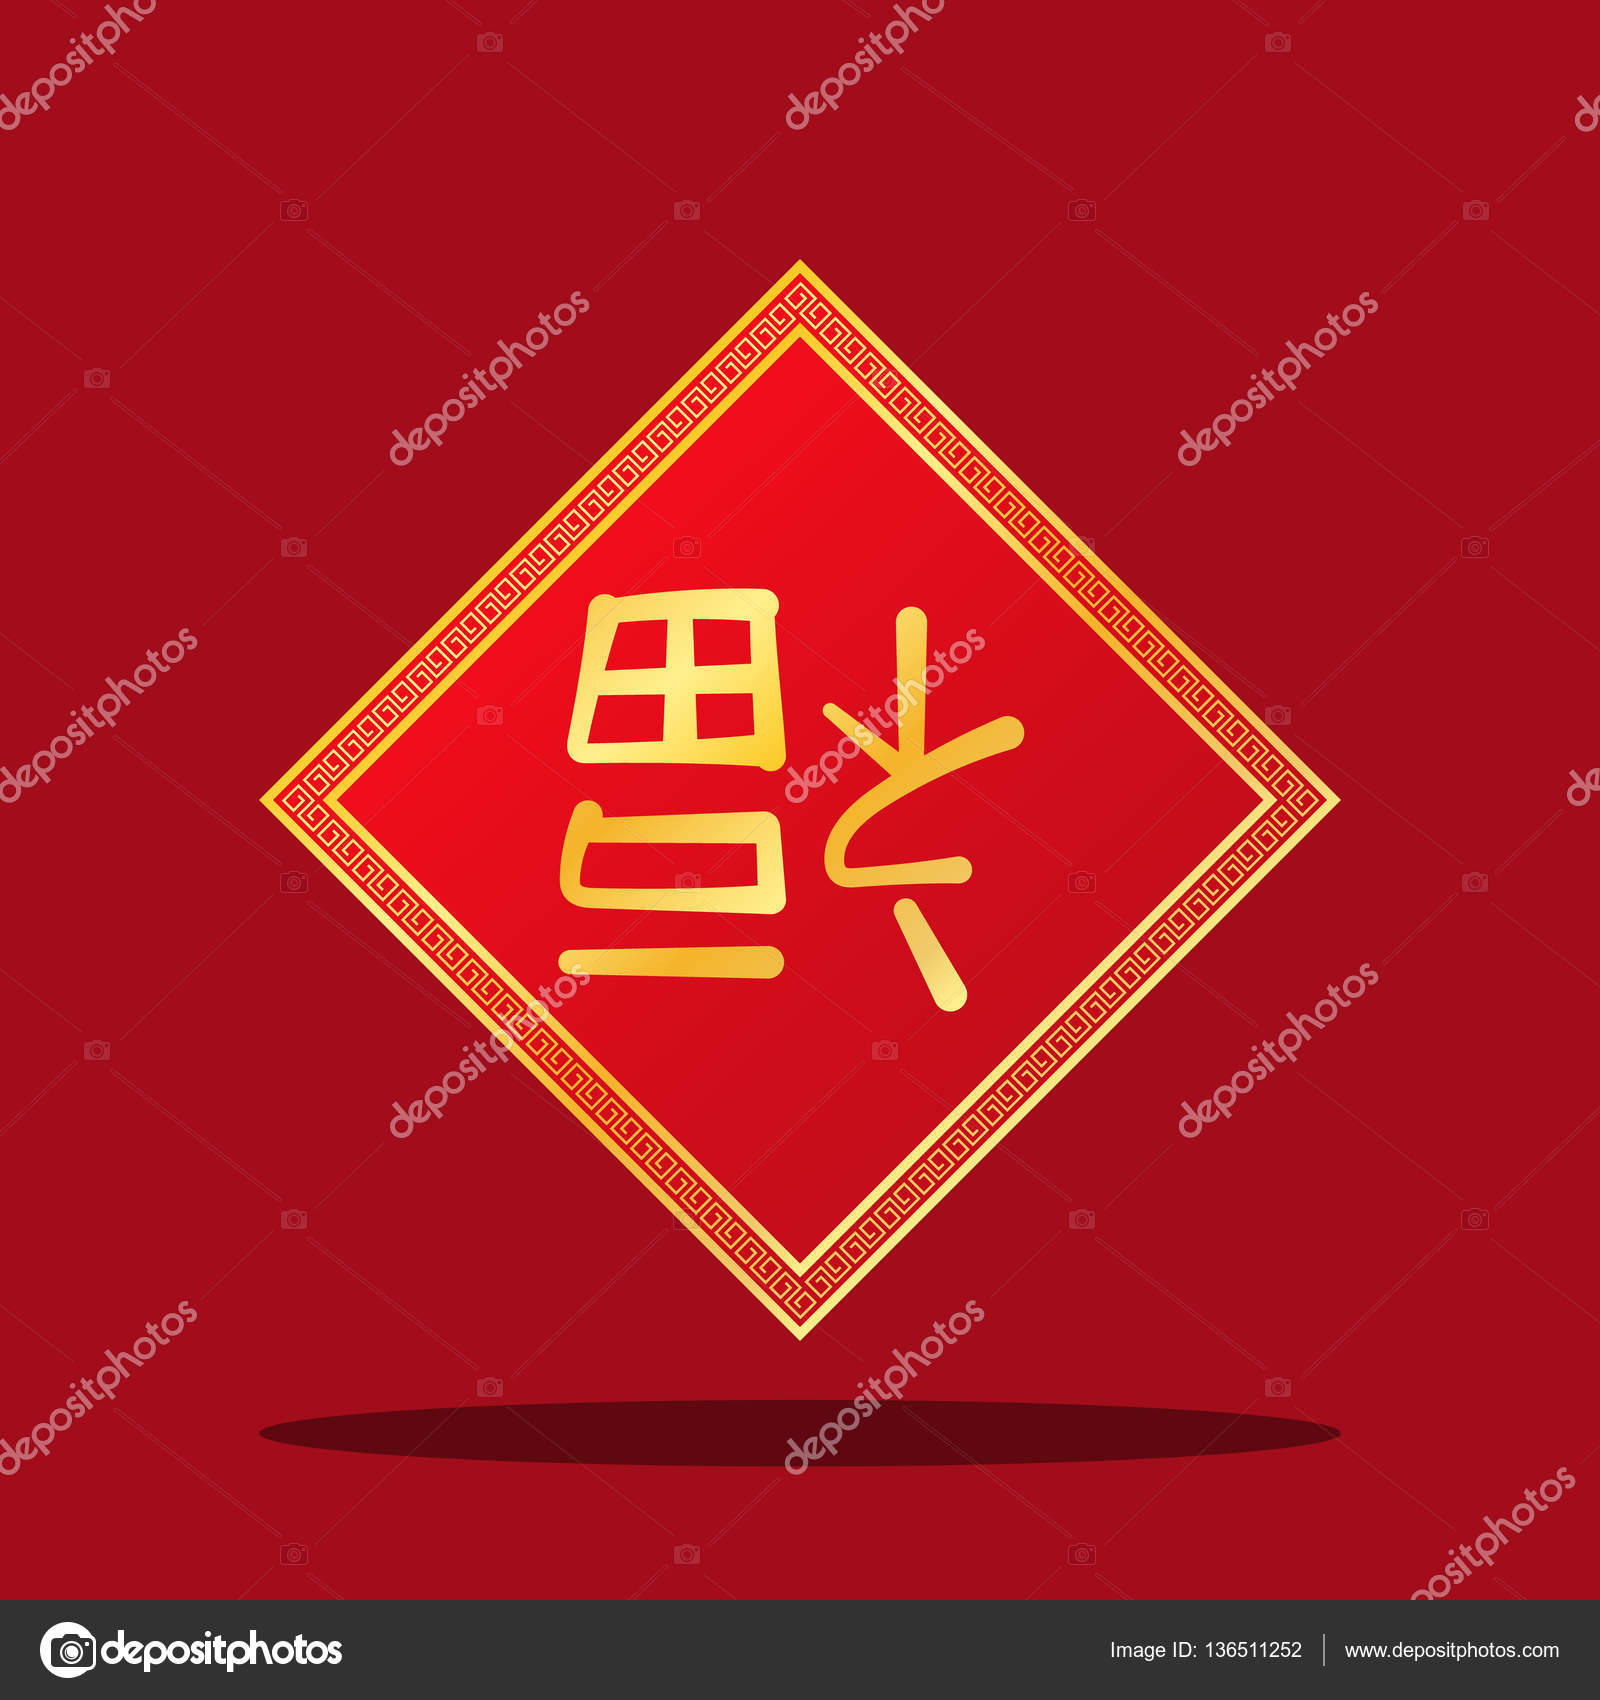 Rhombus fu upside down red background stock vector wisaad rhombus fu upside down red background stock vector buycottarizona